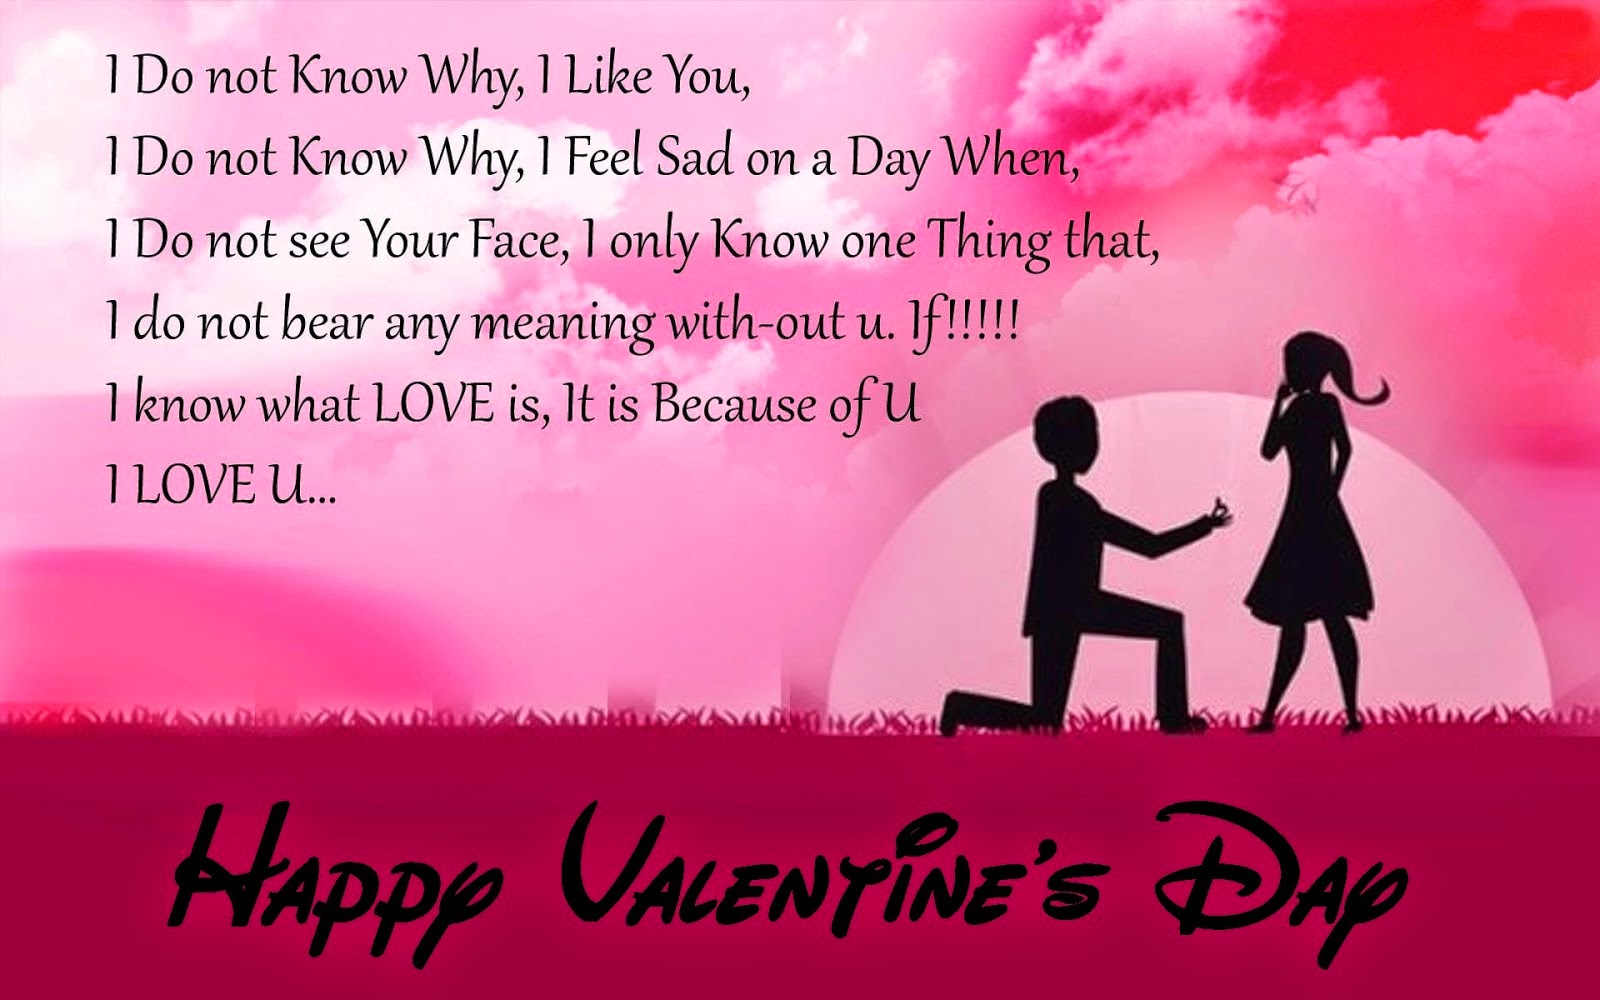 Happy Valentines Day Cards Ideas Quotes Meme For Valentines Day